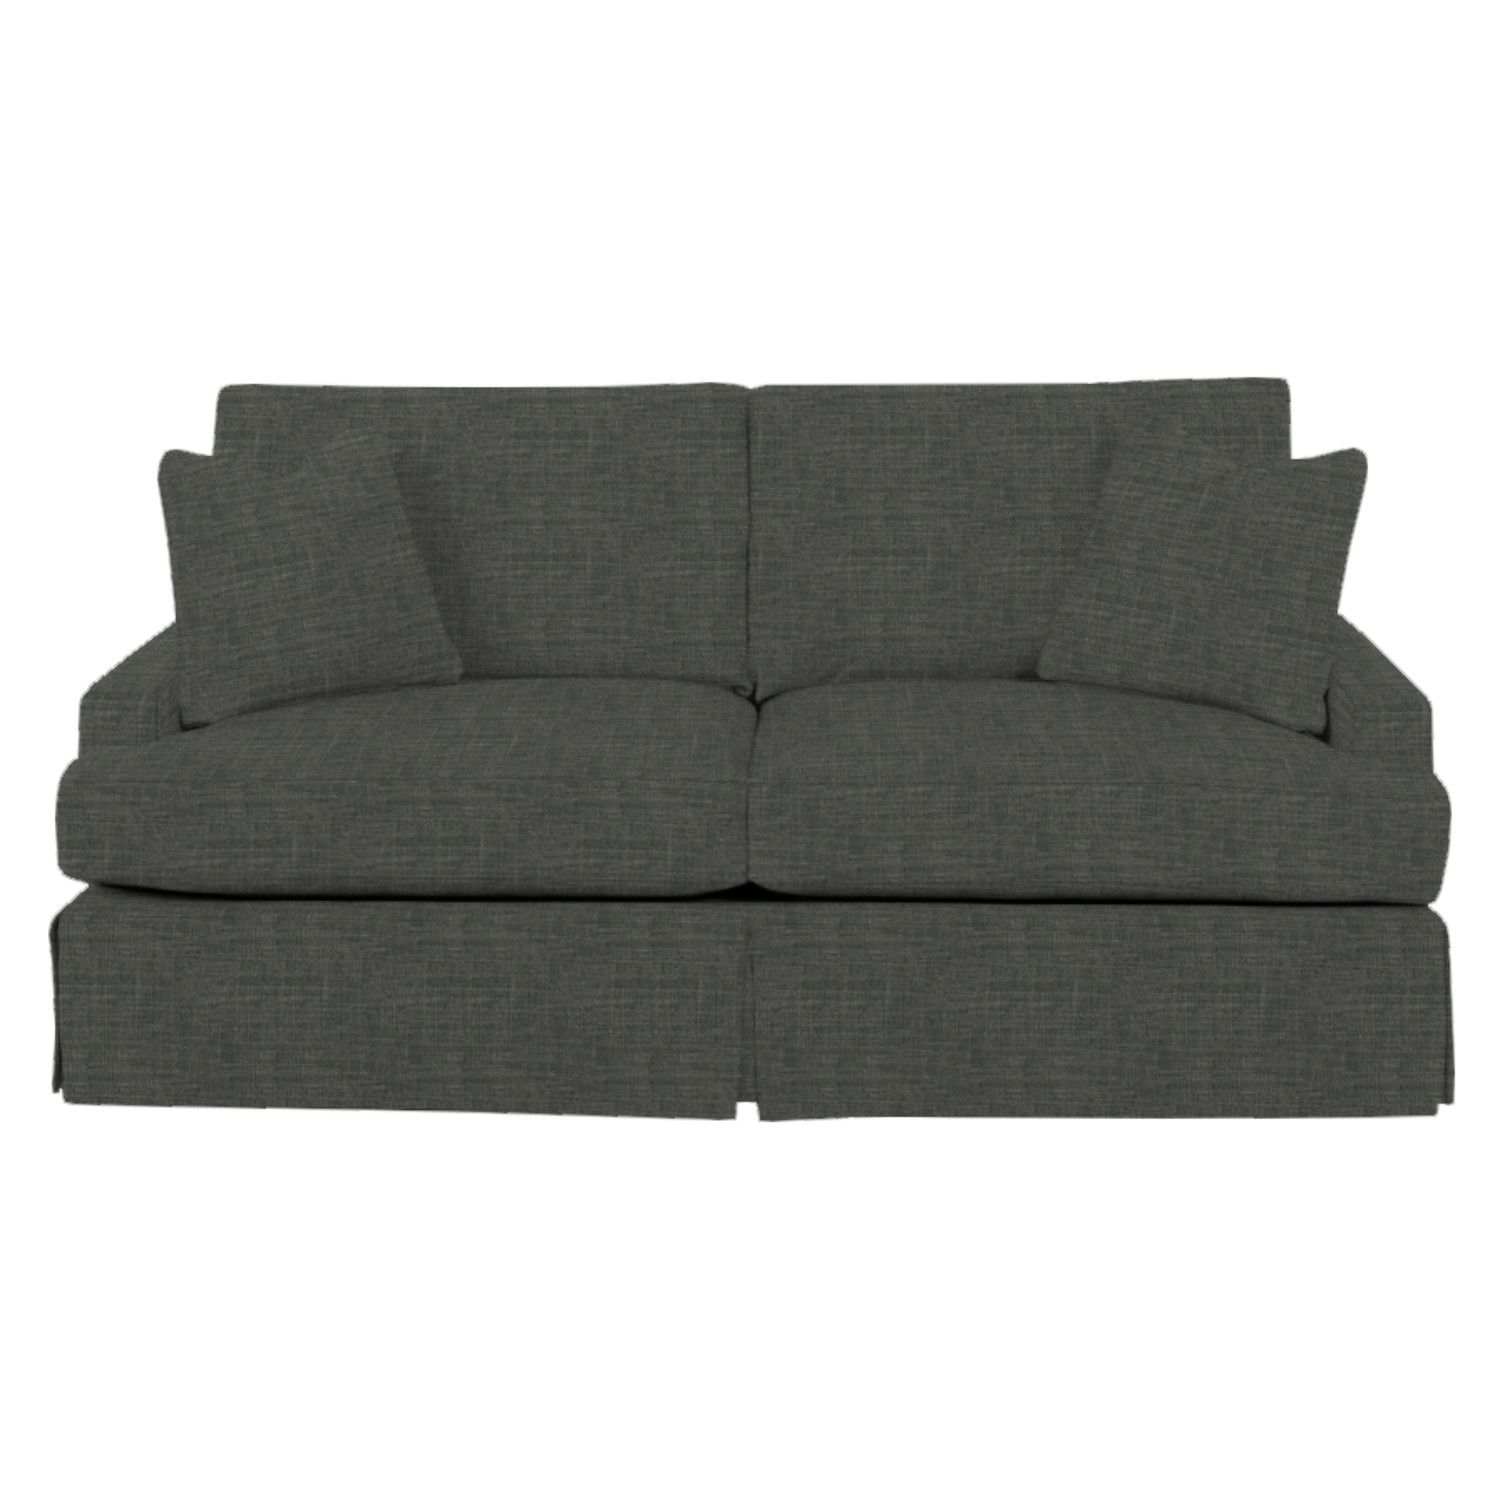 Wayfair Custom Upholstery Gracie Sleeper Sofa U0026 Reviews | Wayfair